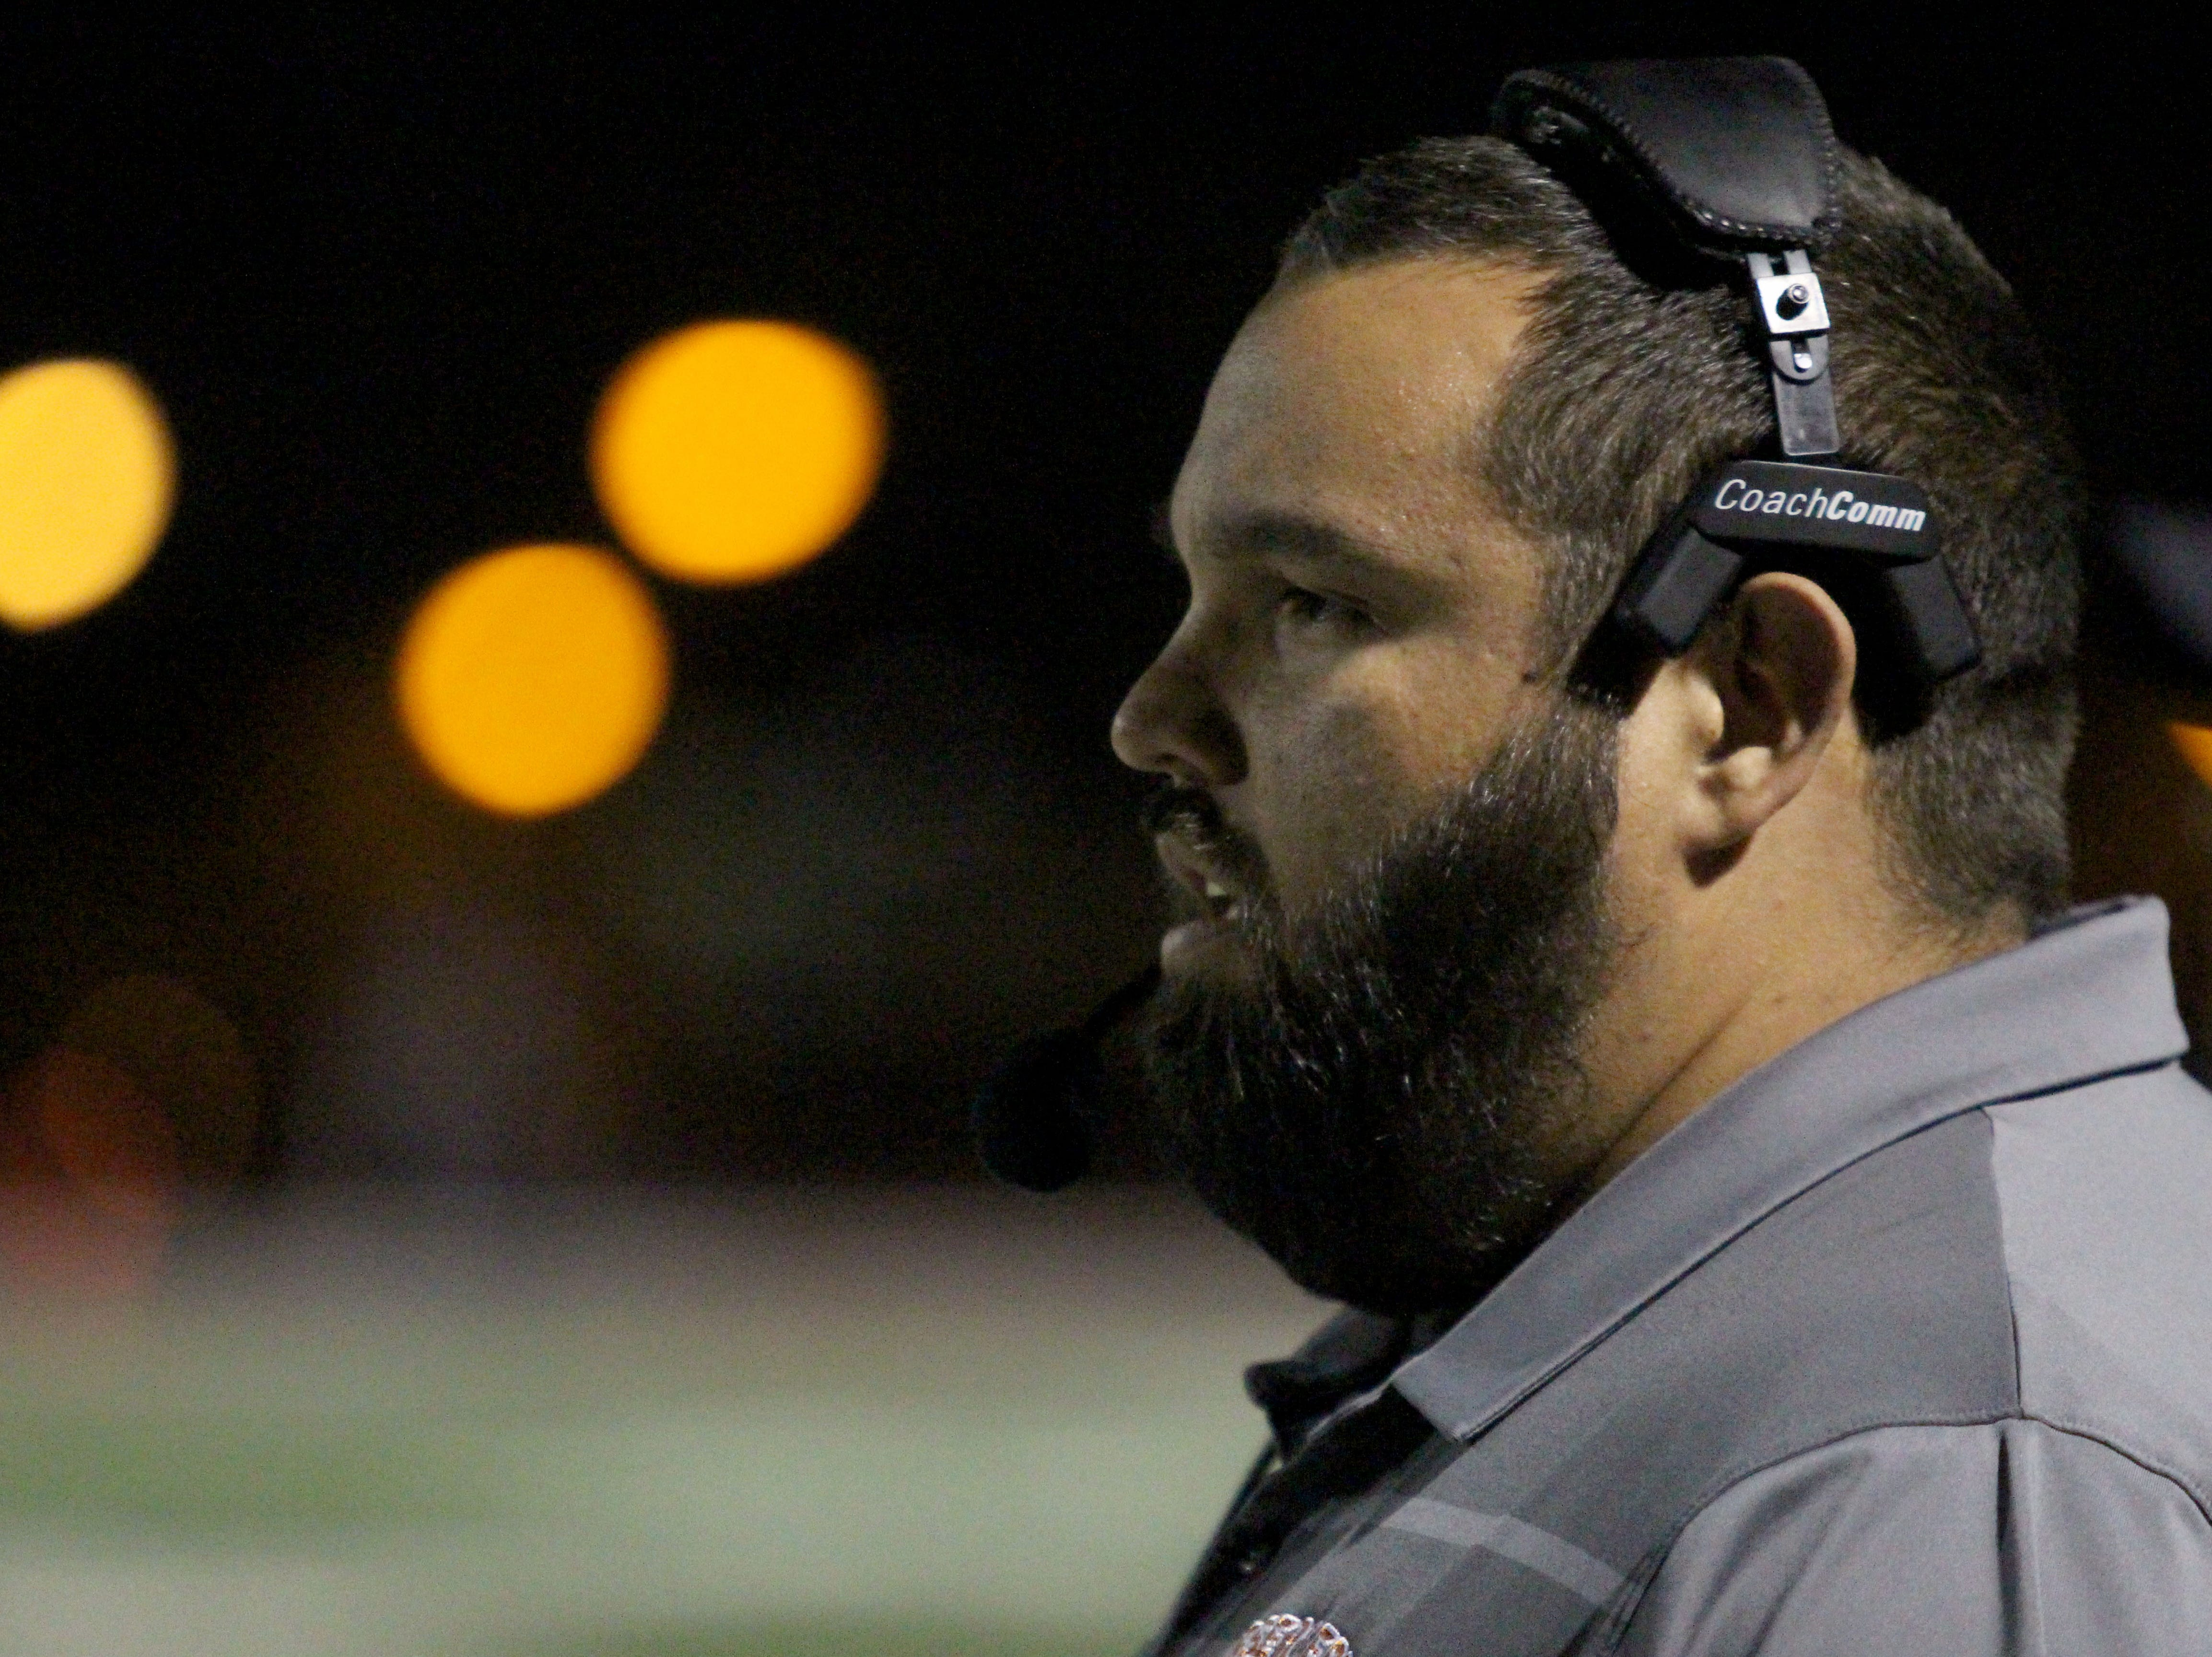 Desert Edge coach Jose Lucero looks toward the field during game against Saguaro on Friday night at Coronado High School on Nov. 16, 2018.